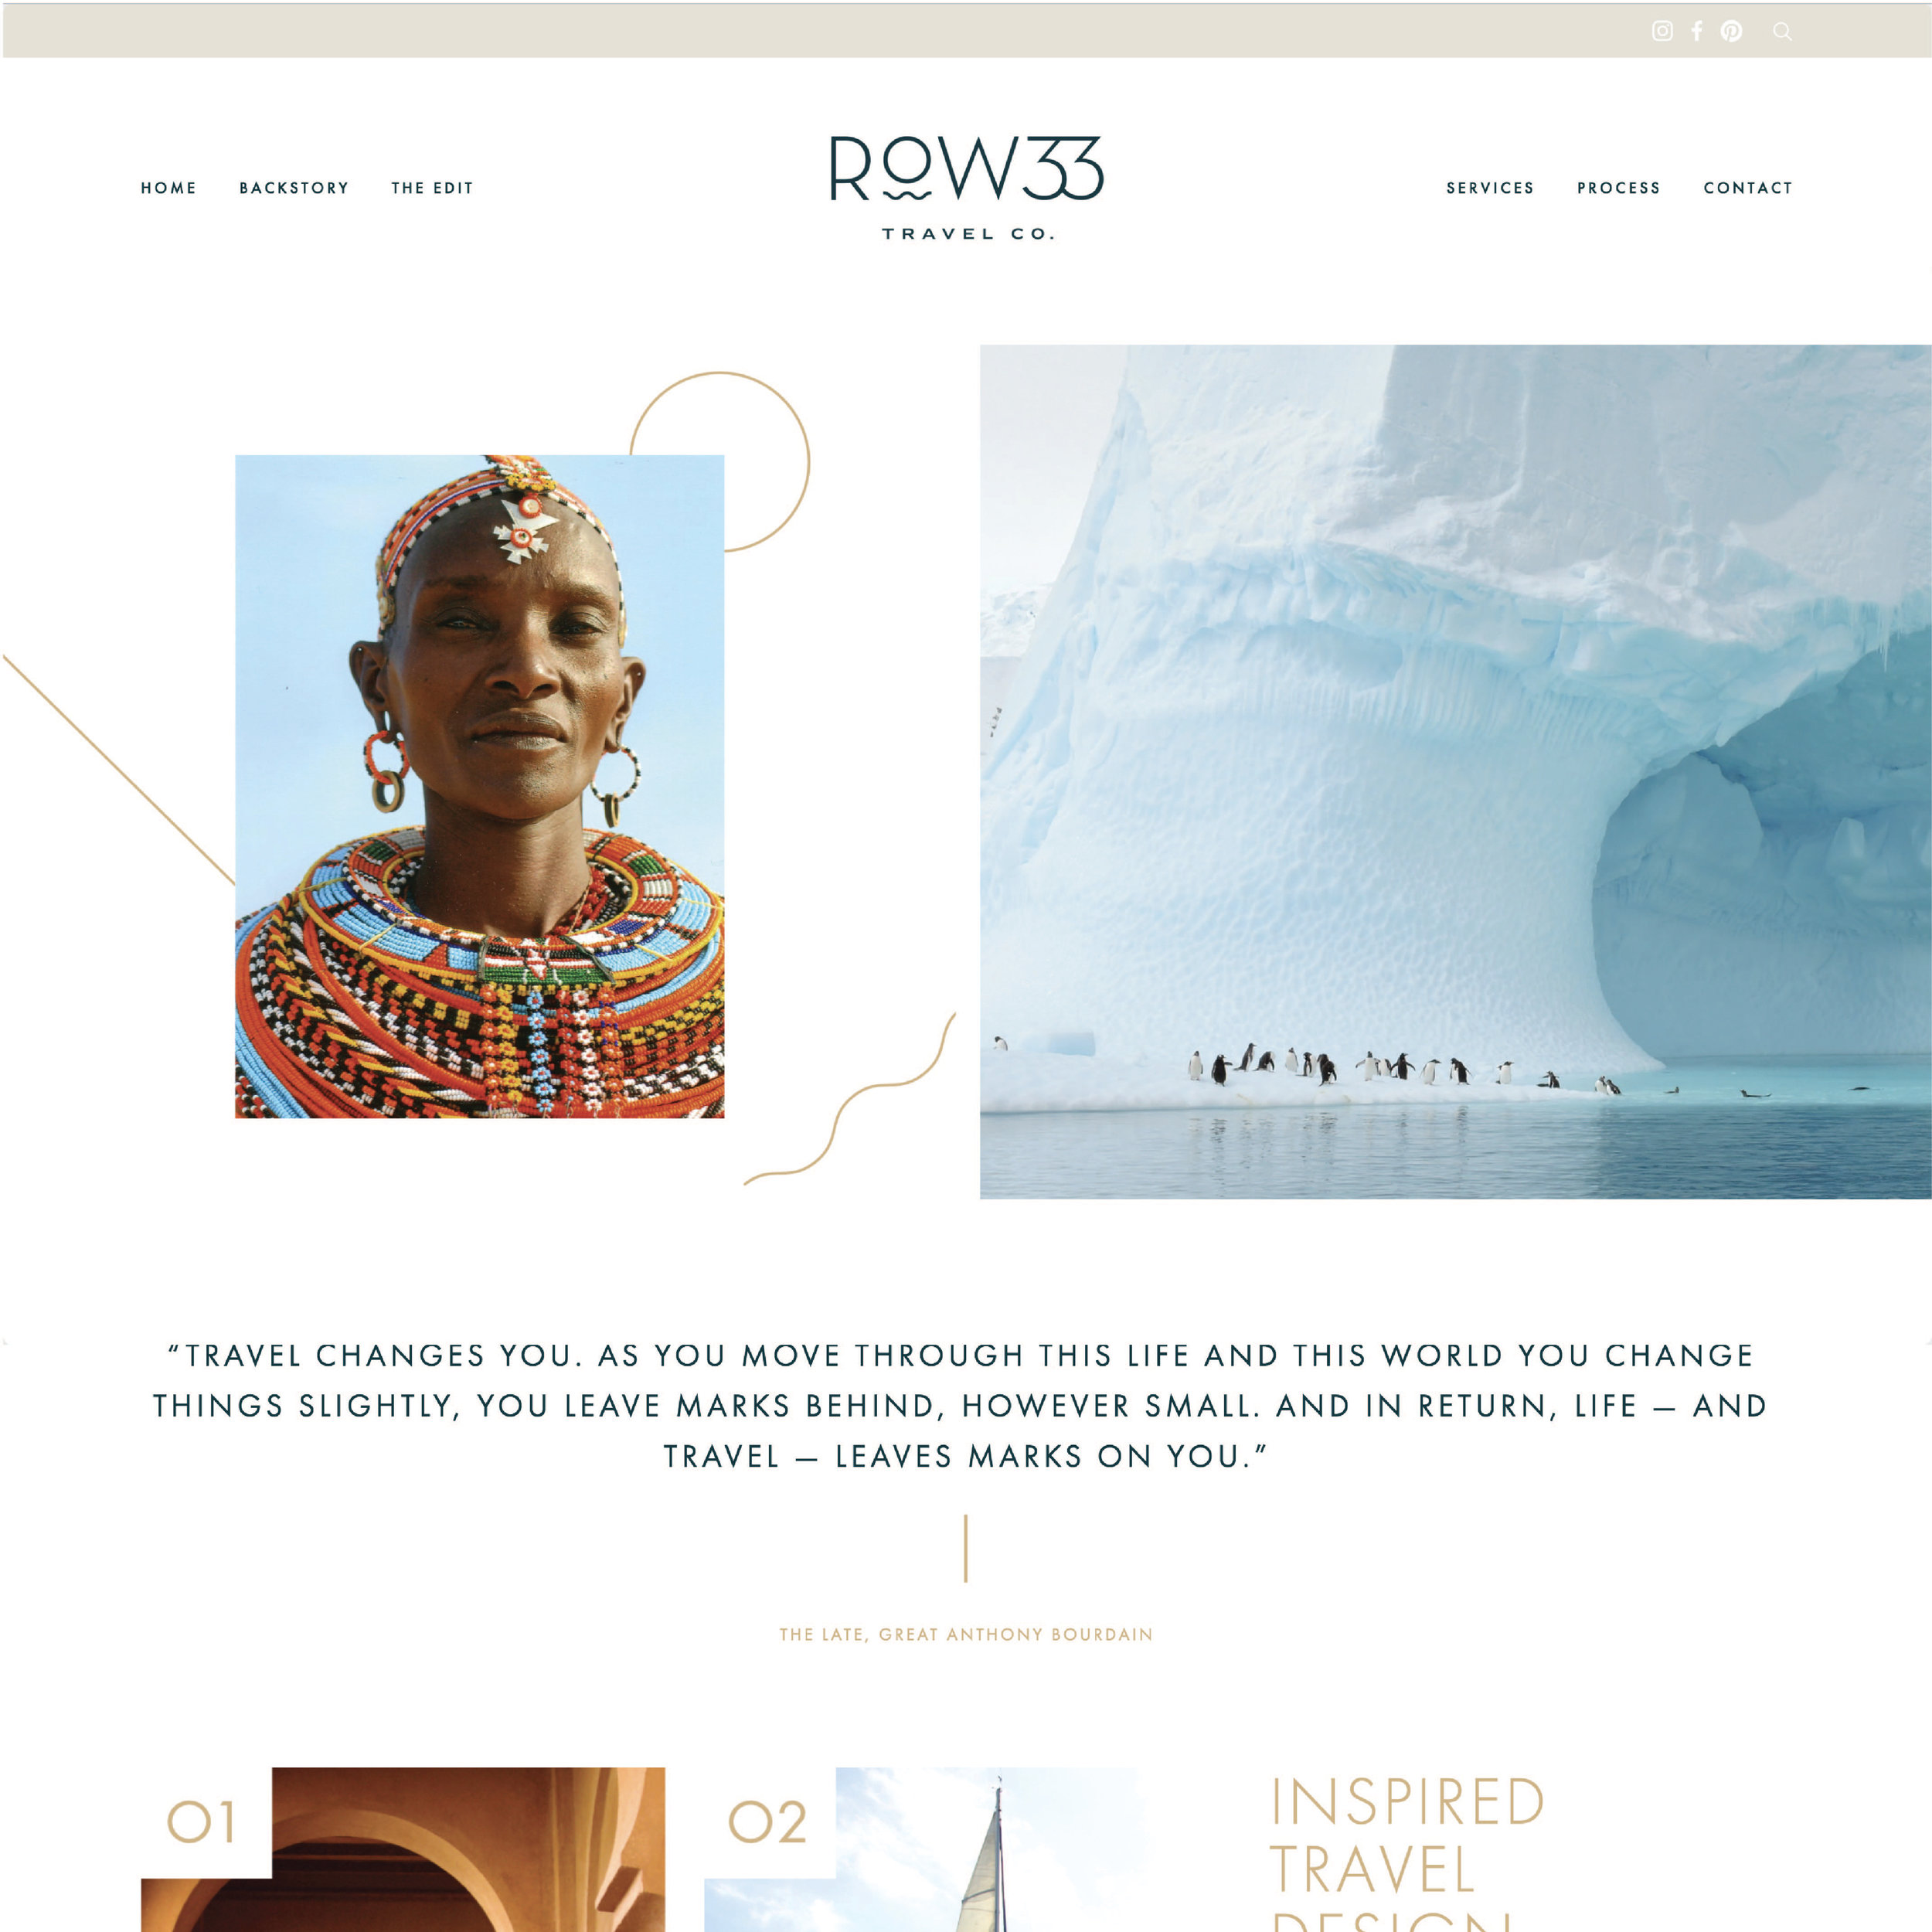 Row33TravelCo_Screenshot1.jpg